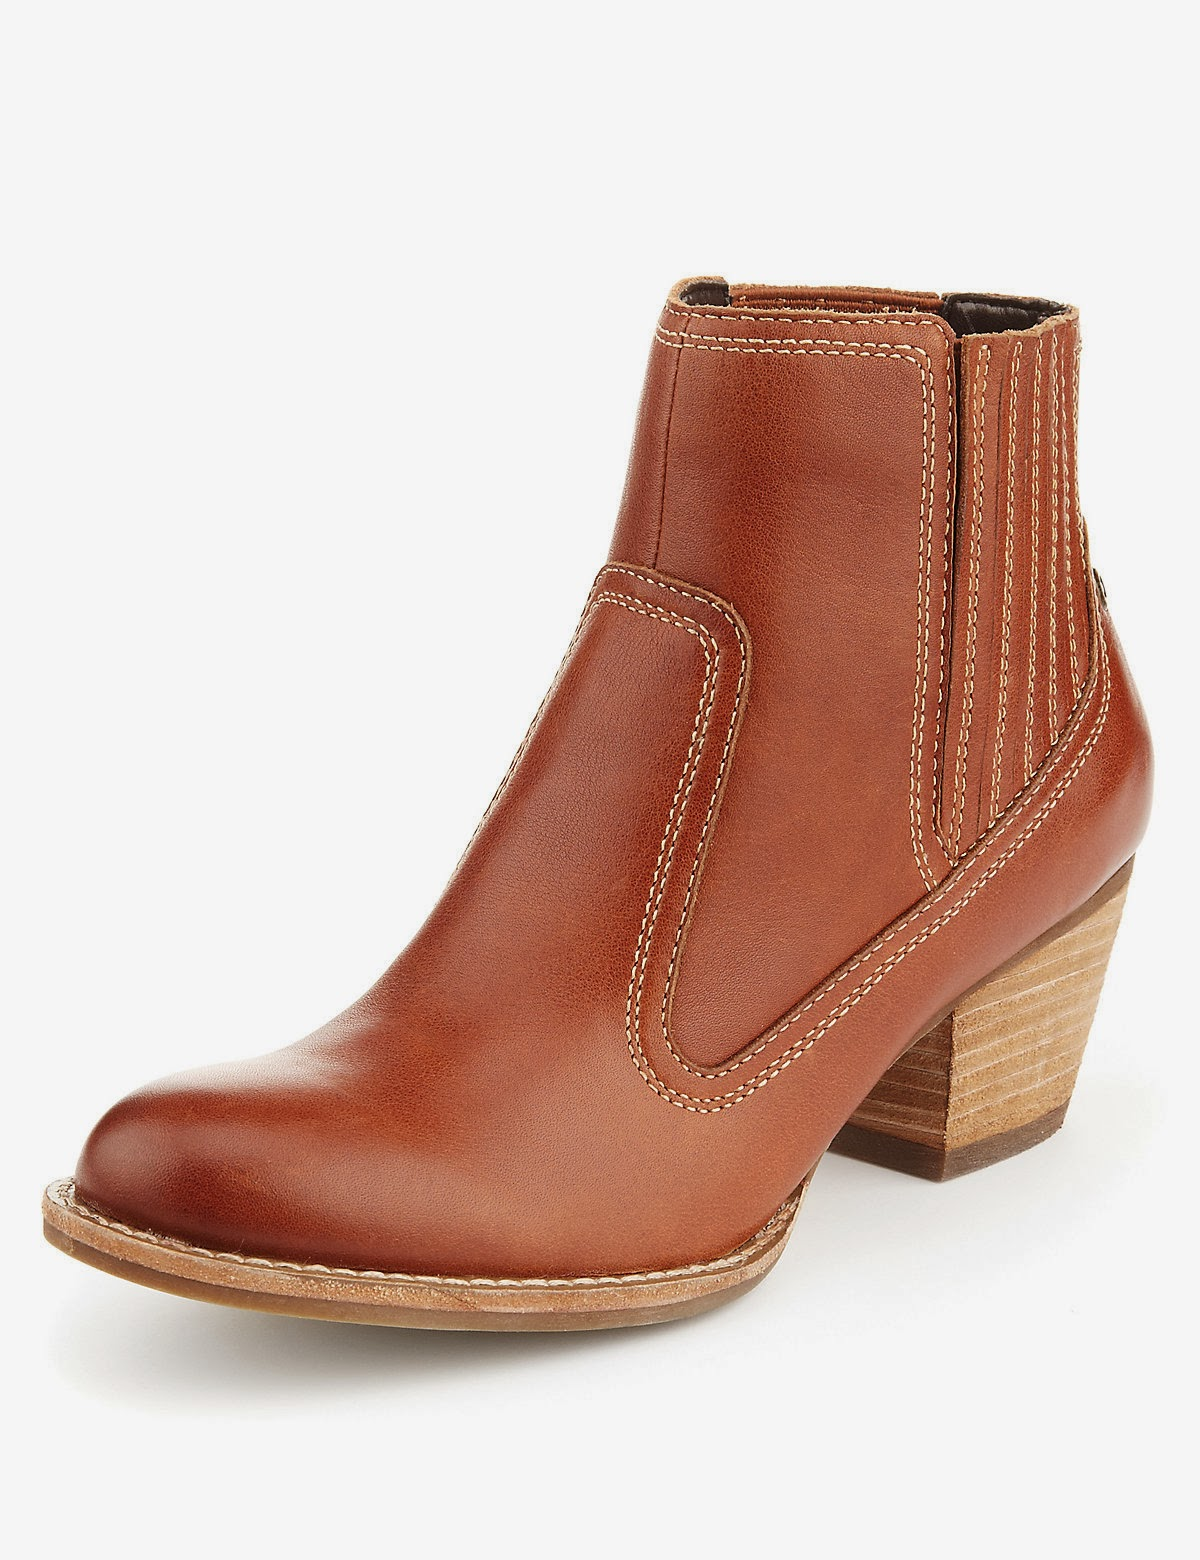 Tan Boots from Indigo at Marks & Spencer